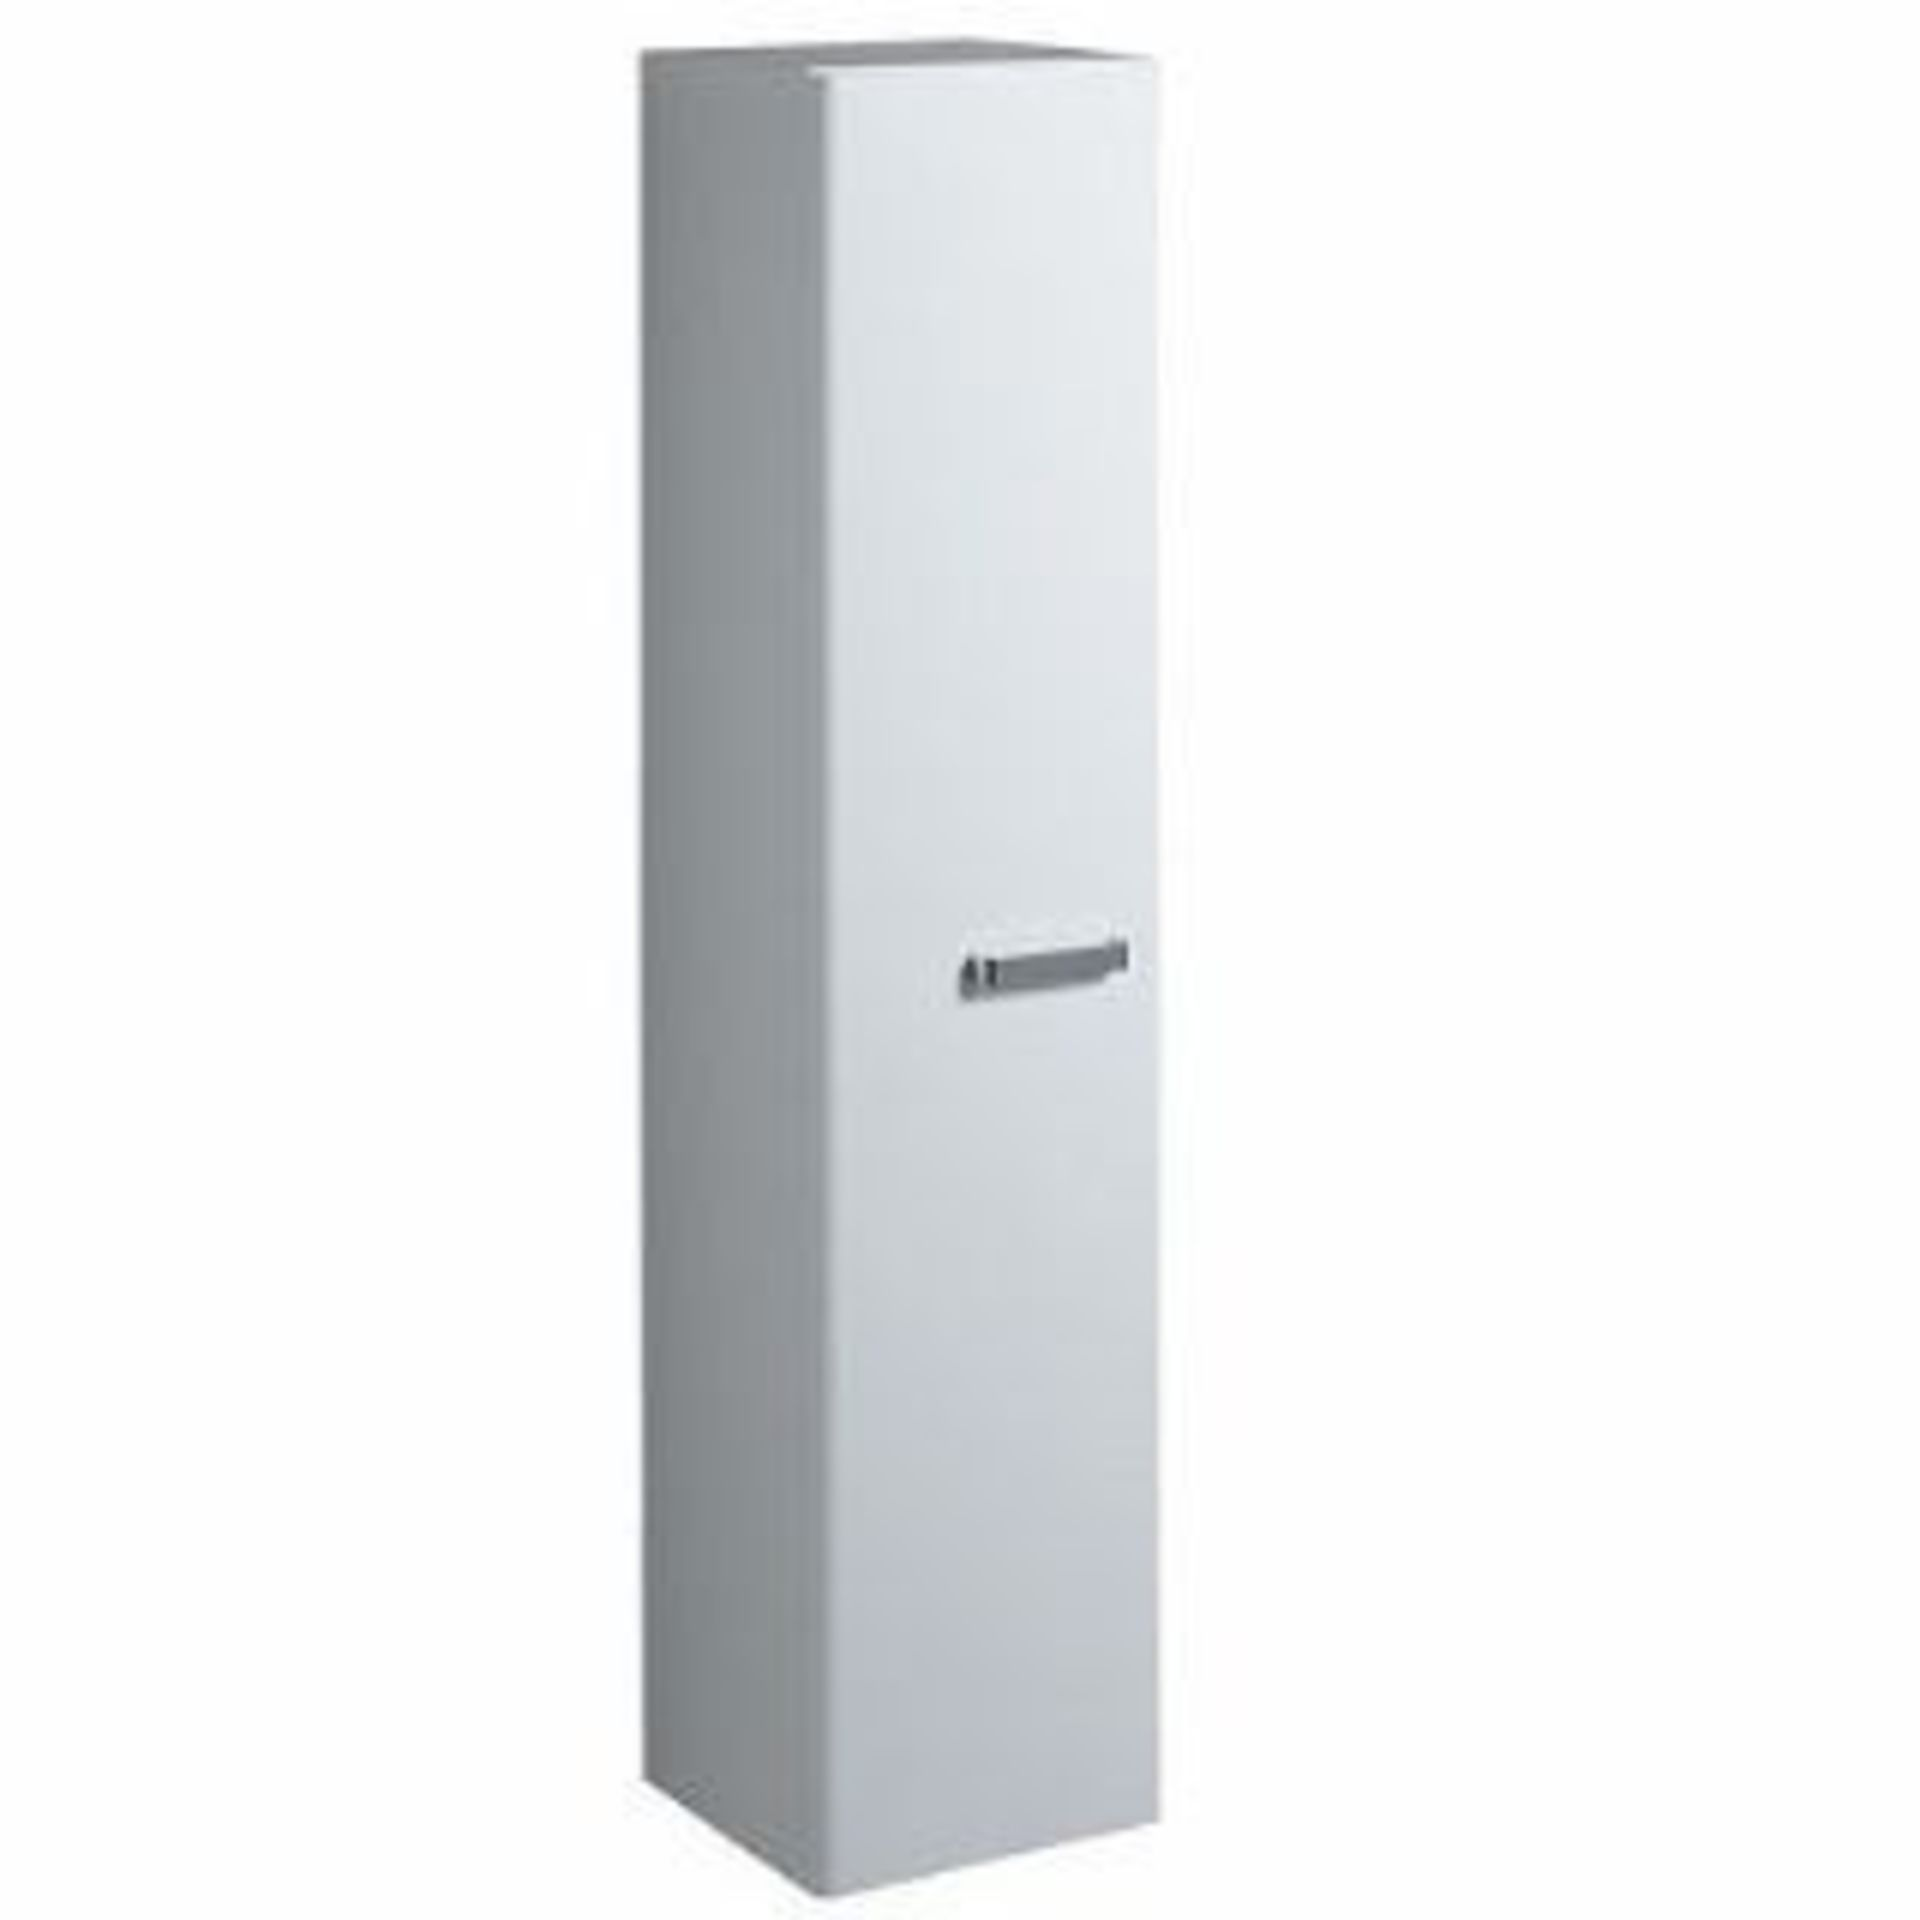 Lot 809 - Brand New (QL118) Twyford 1730mm White Tall Furniture Unit. RRP £863.99.White gloss finish Wall moun